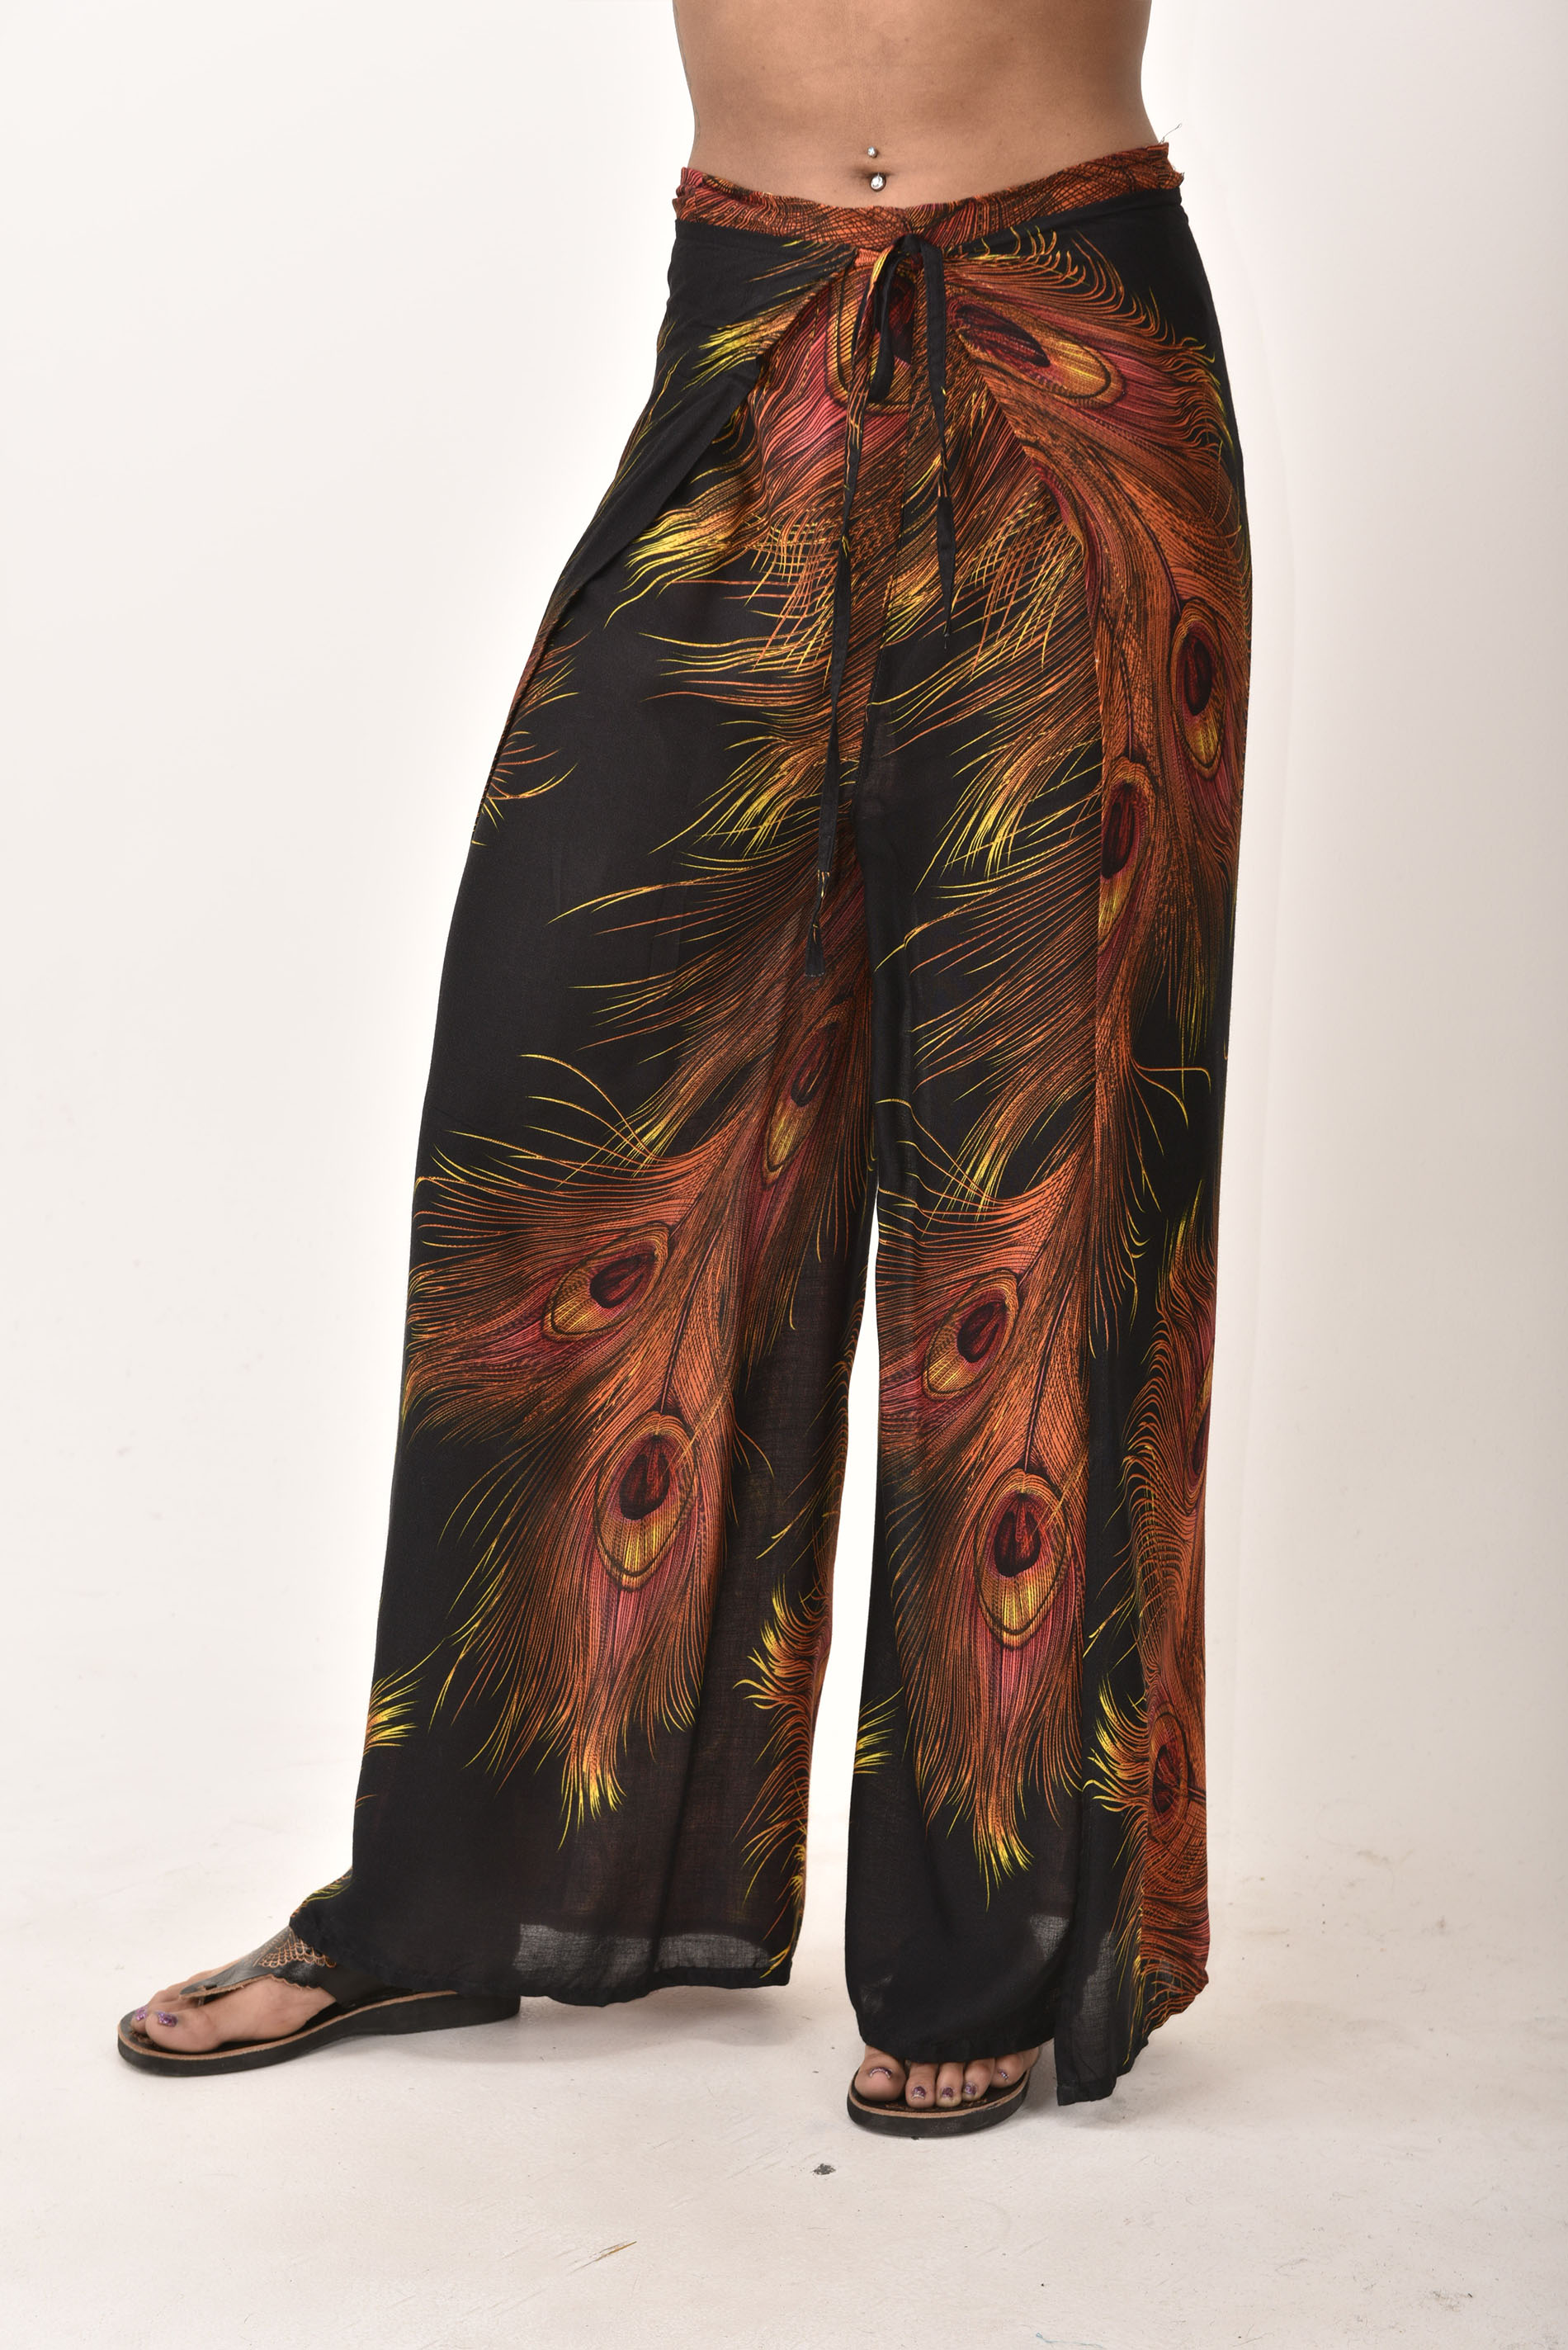 Wrap Pants Peacock Print, Black - 4504K